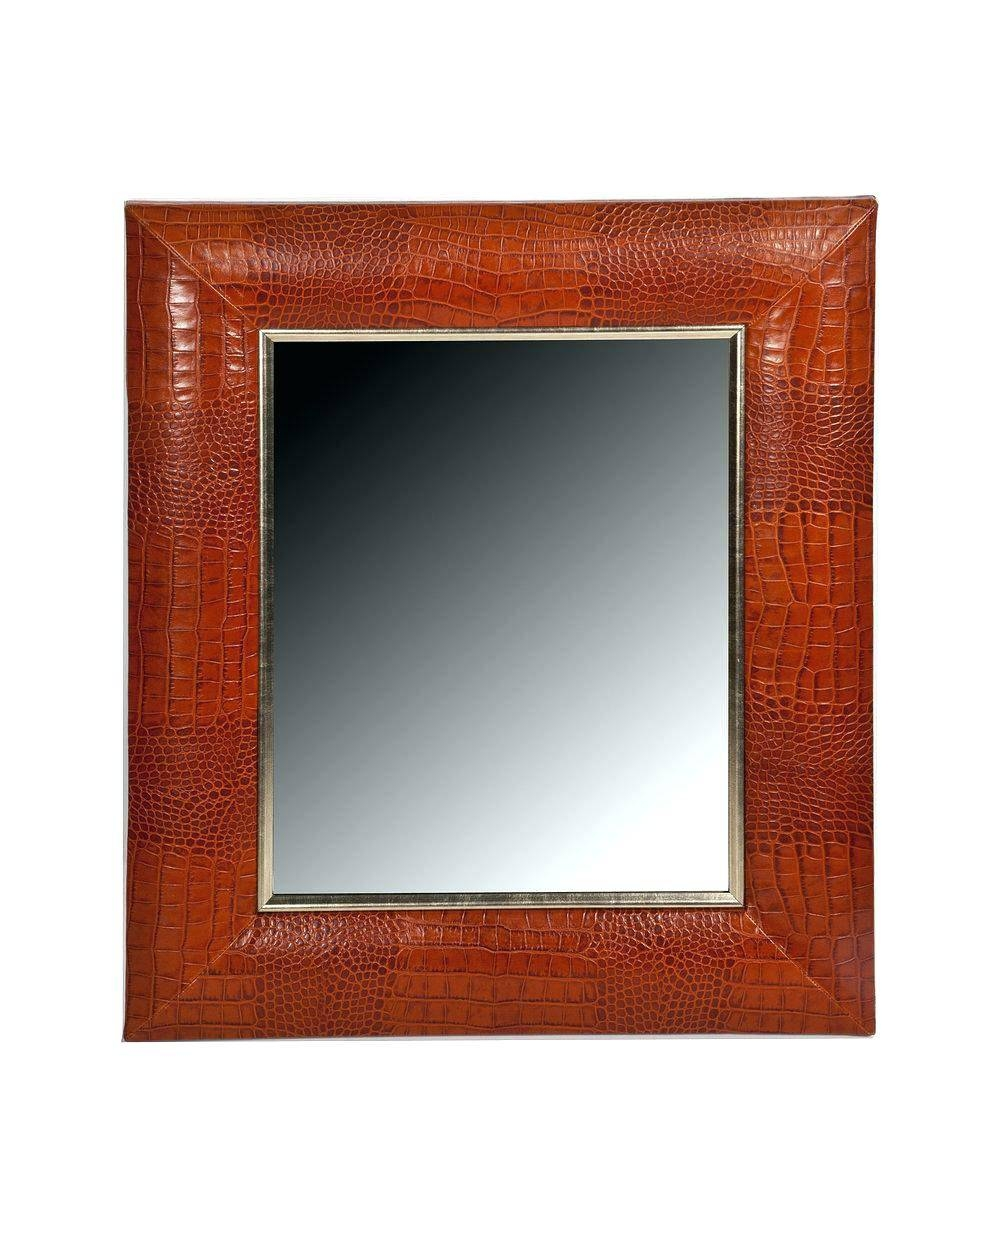 Wall Mirrors ~ Celine Black Leather Round Wall Mirror Leather Inside Black Leather Framed Mirrors (View 9 of 15)